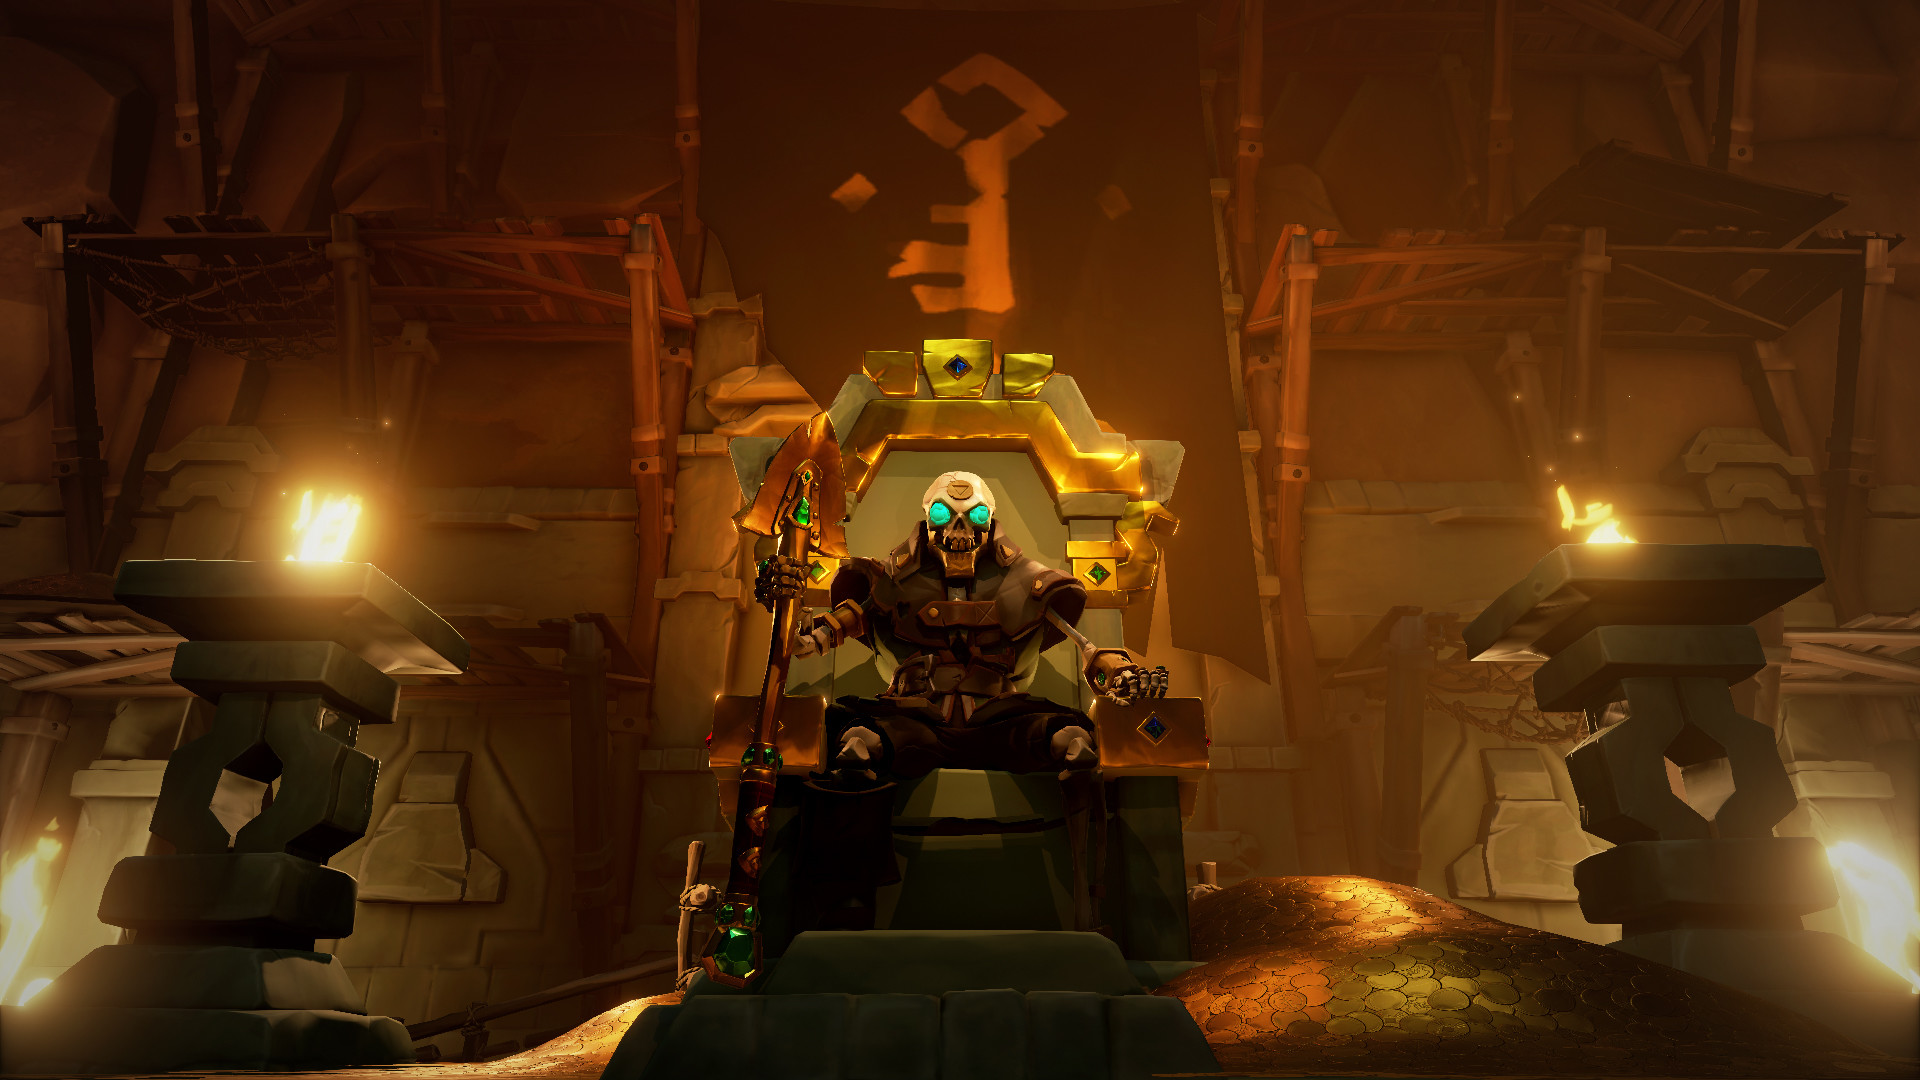 Sea of Thieves Vaults of the Ancients update is live now